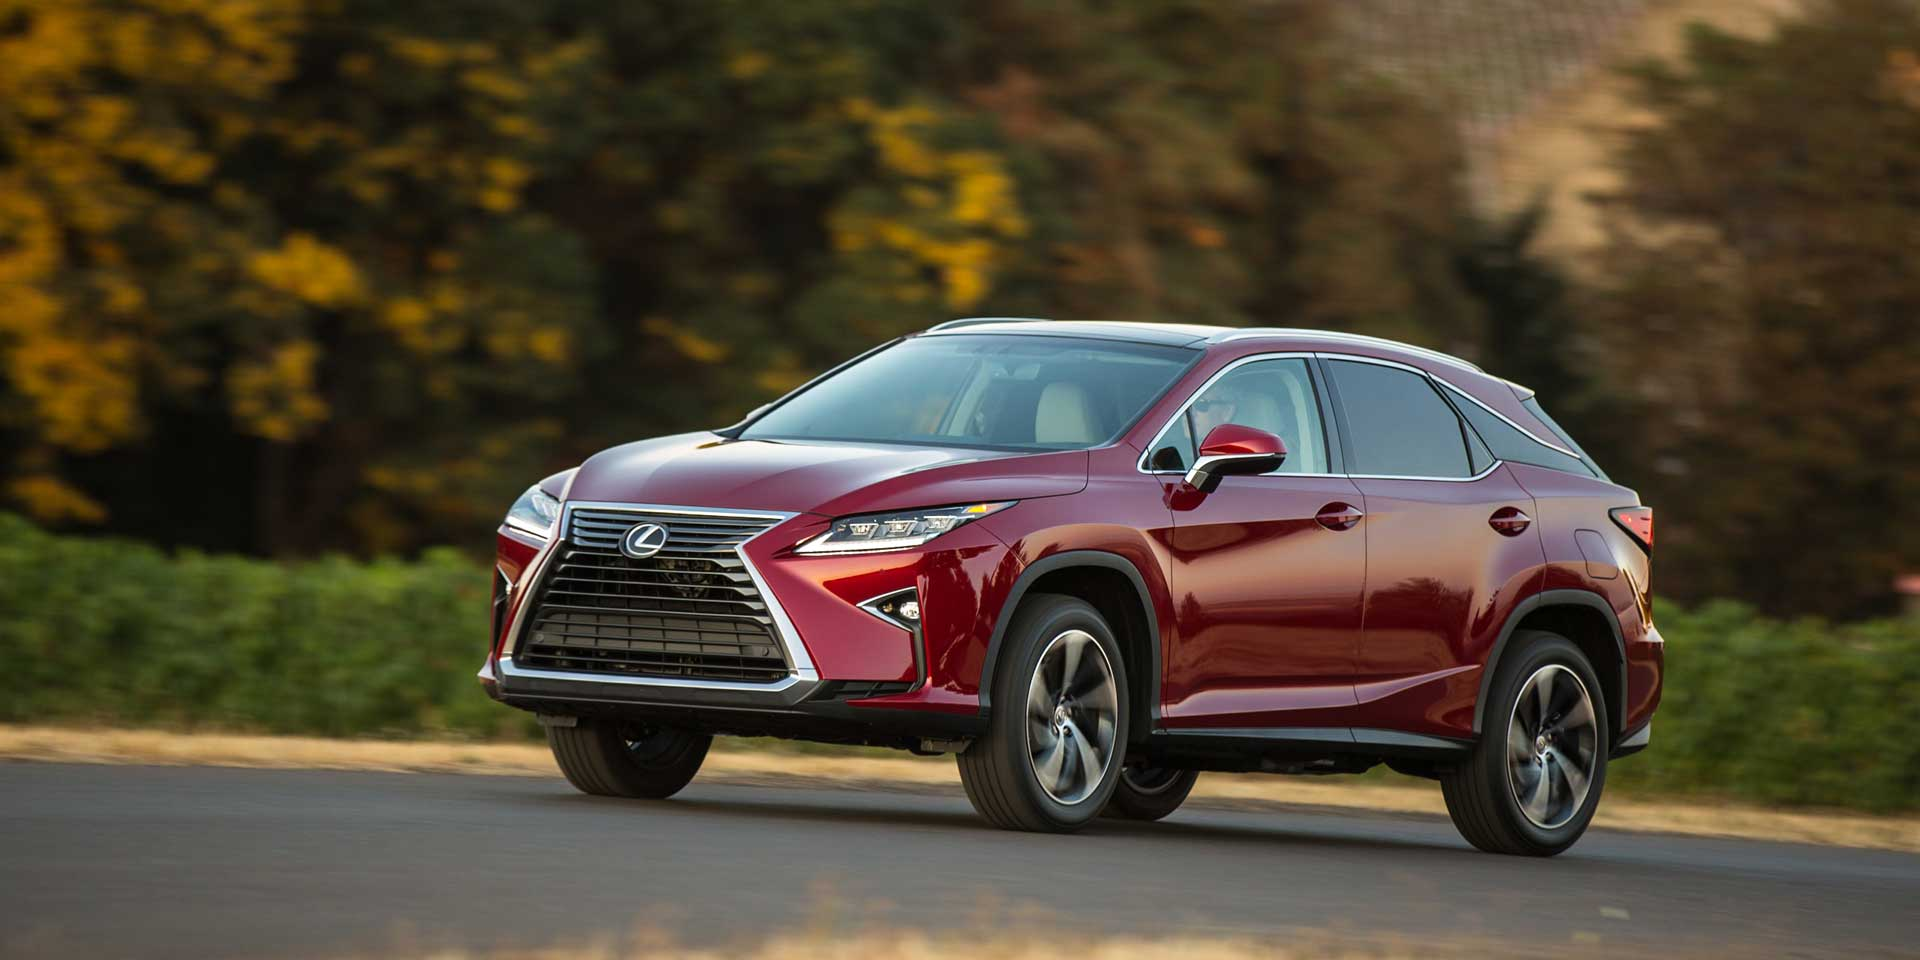 2017 Lexus Rx The Is A Five Seat Mid Size Luxury Crossover Suv Original Was One Of First Crossovers To